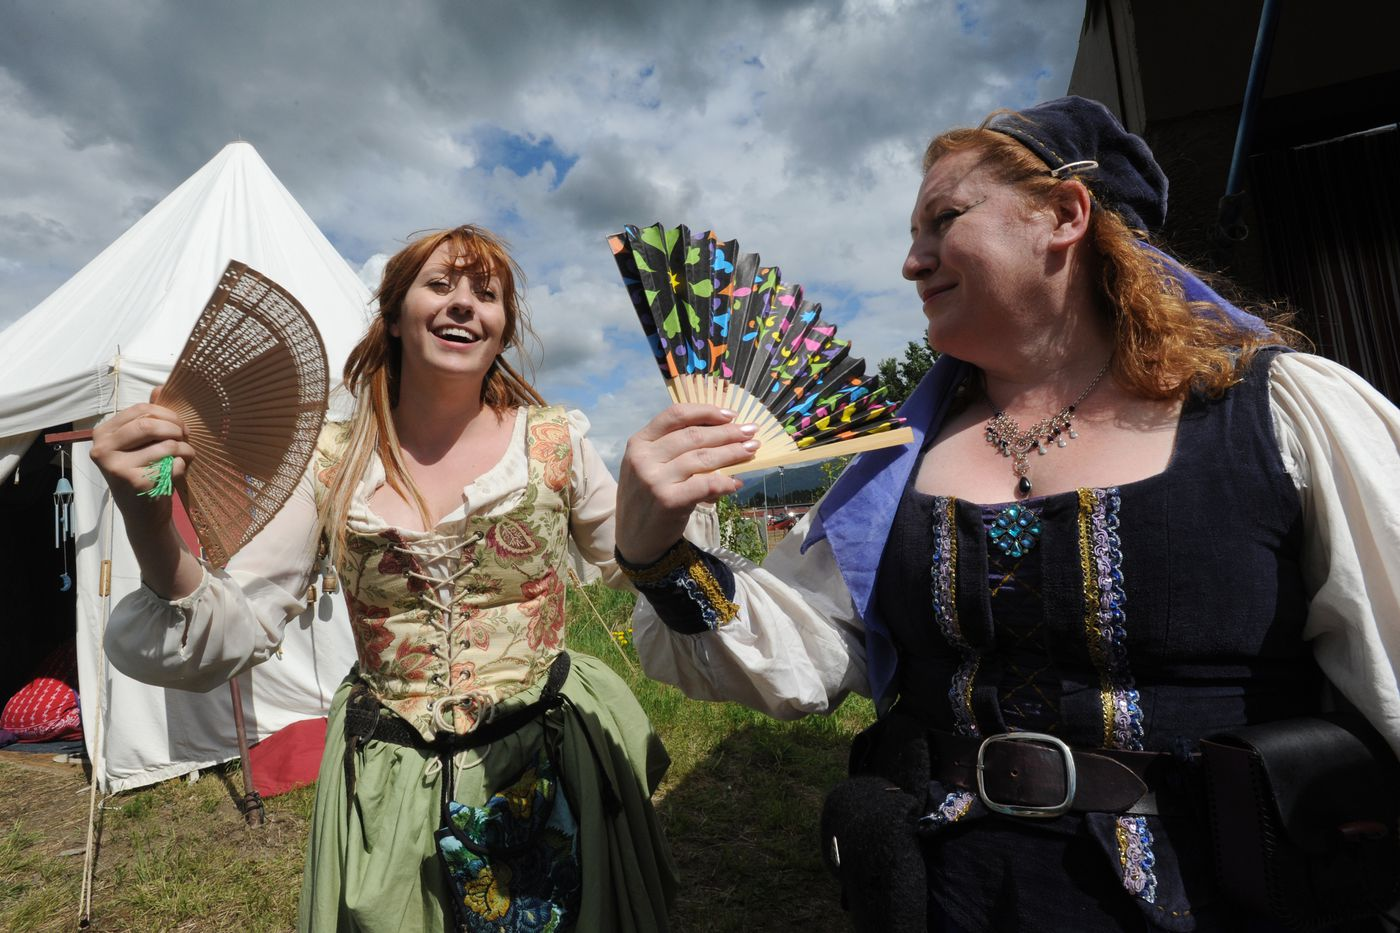 3 Barons Renaissance Fair at Tozier Track in Anchorage on Sunday, June 7, 2015.